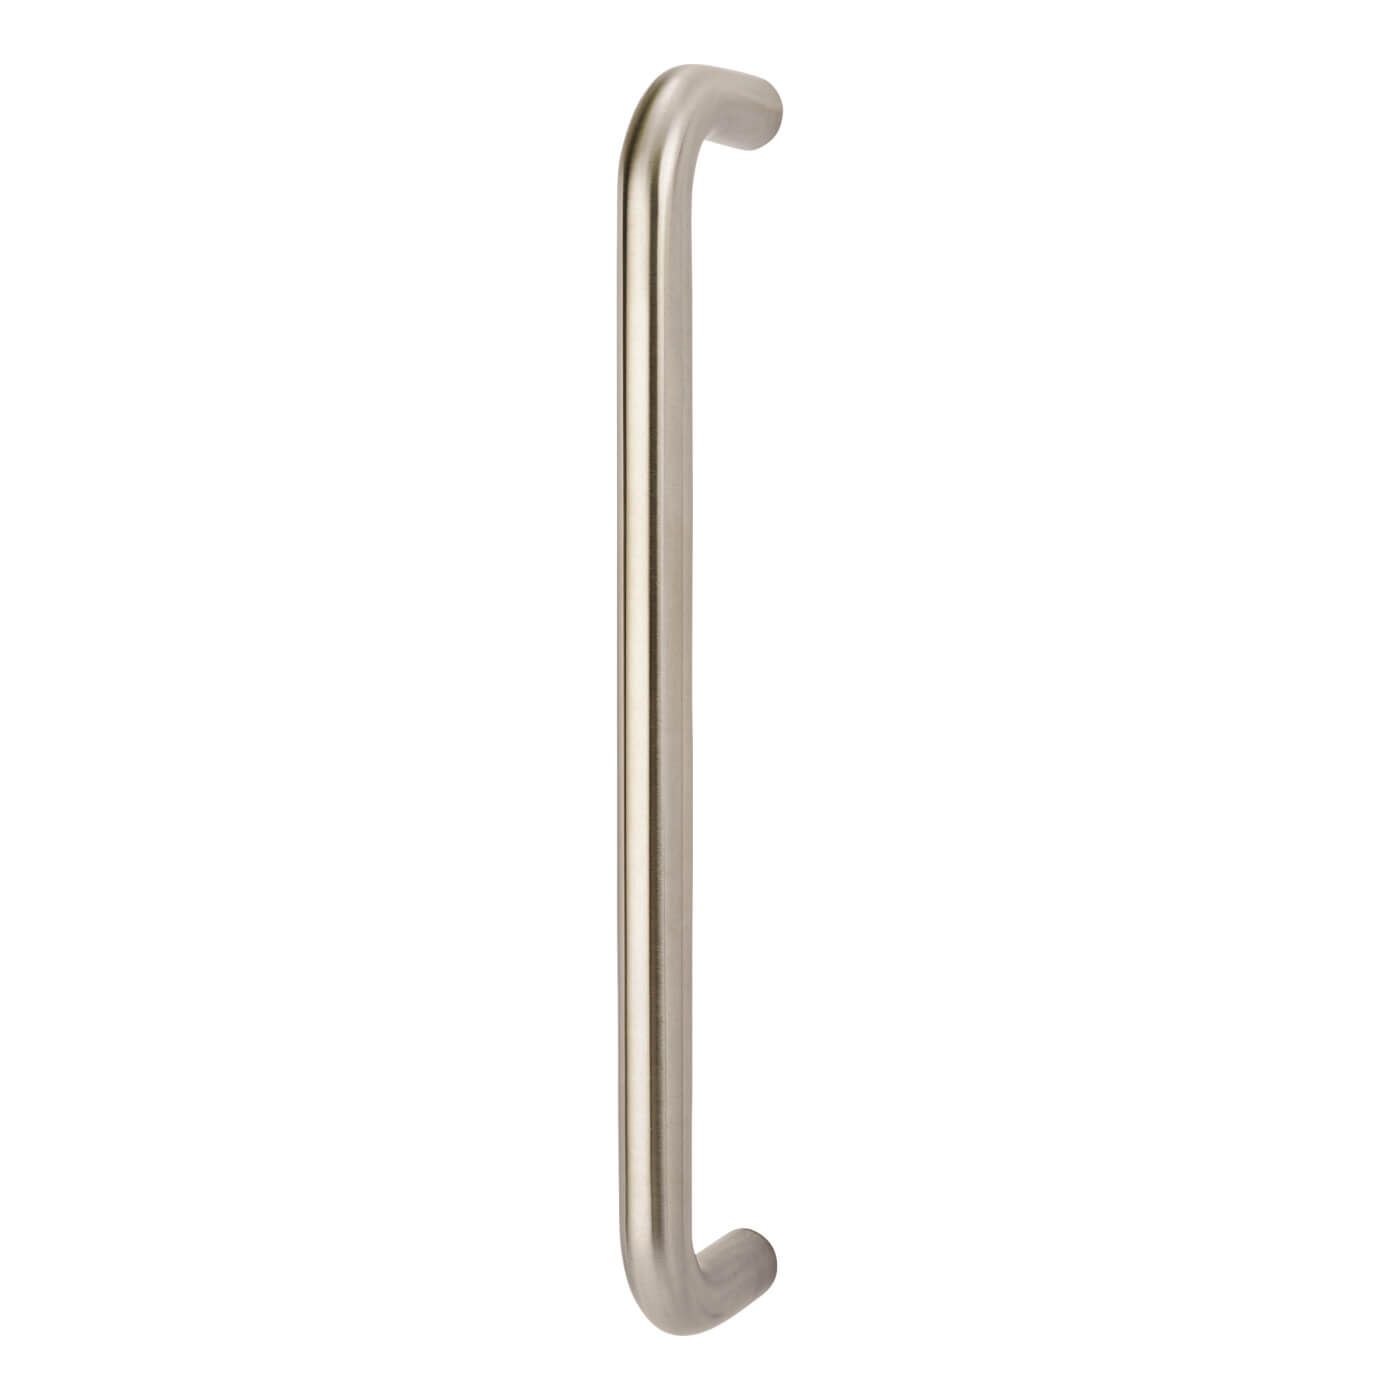 Altro 19mm D Bolt Fix Pull Handle - 305mm Centres - Satin Stainless Steel)